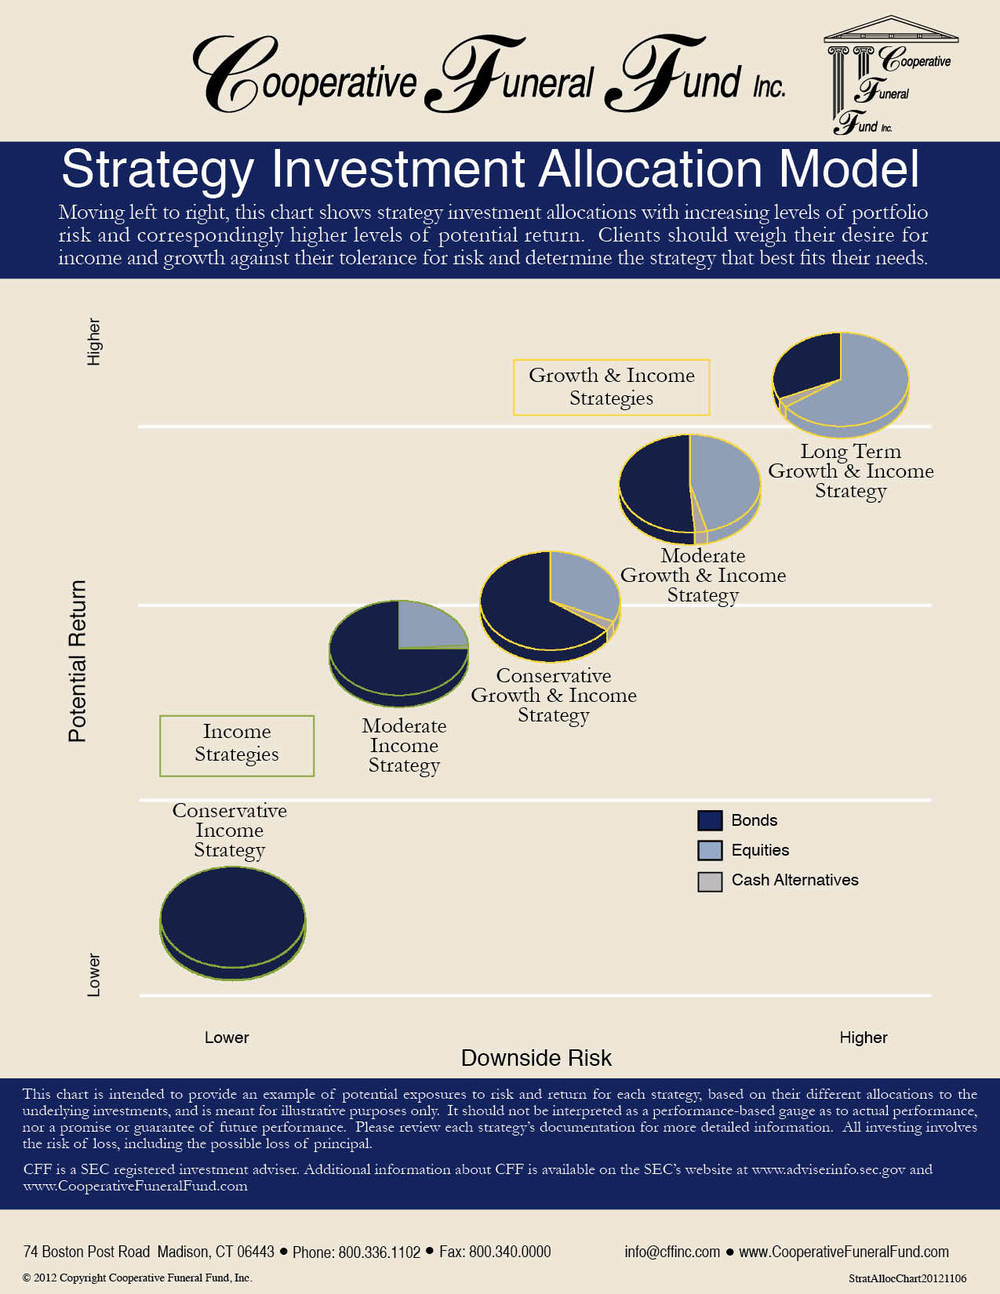 strategyallocationchart-wch-20121106.jpg